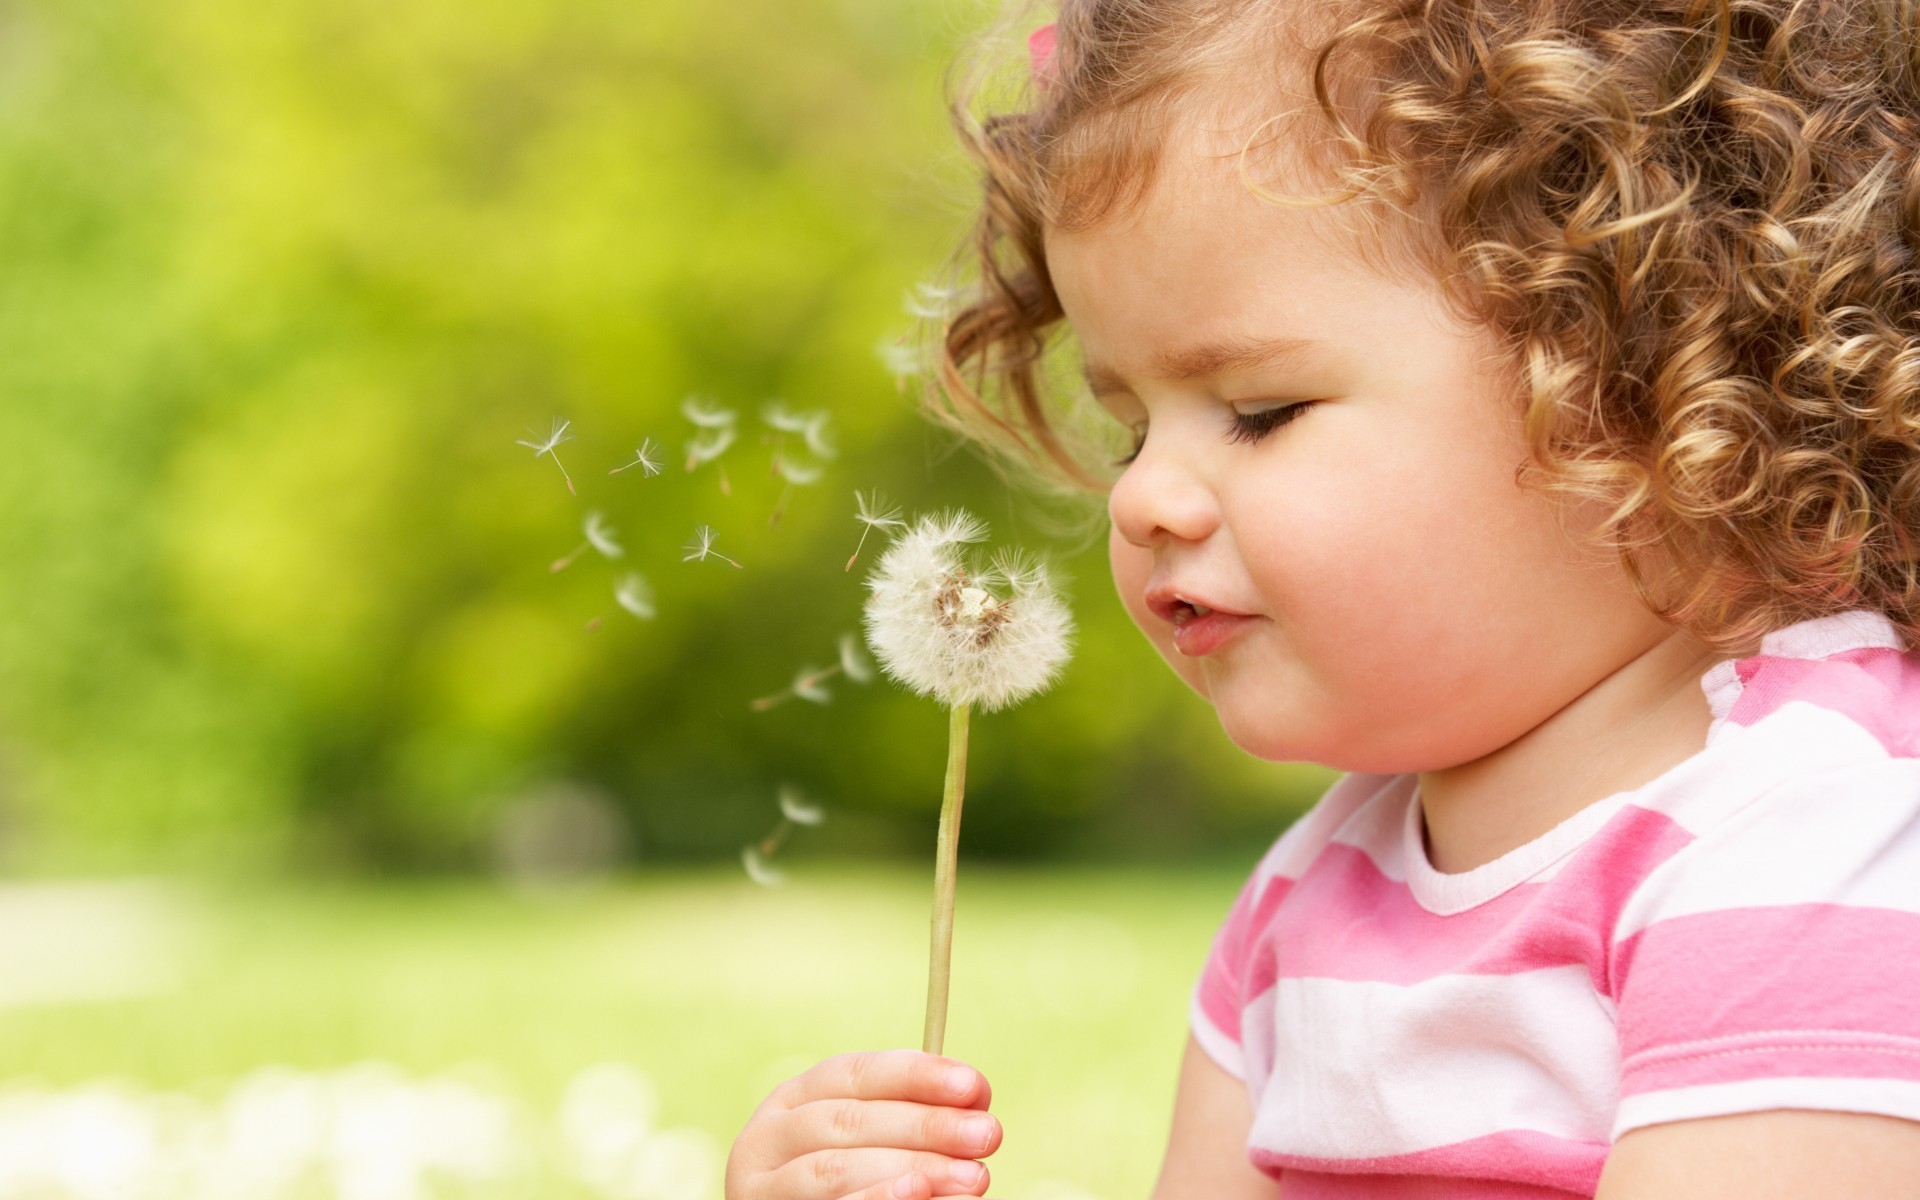 A Curly Child Blowing a Dandelion